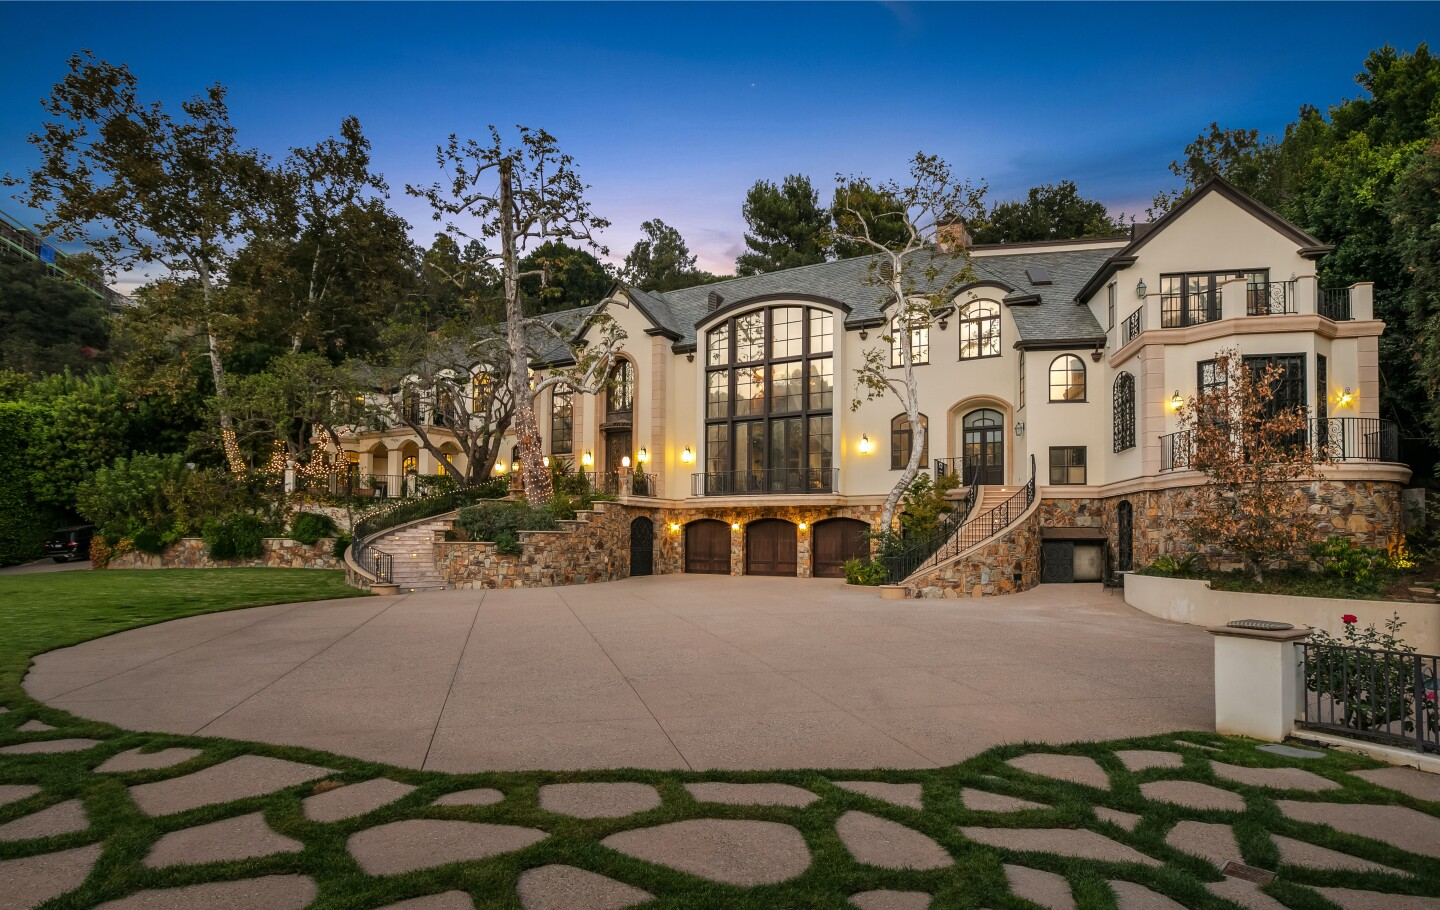 The compound includes a 16,000-square-foot mansion, a tennis court and a swimming pool with a 60-foot slide.